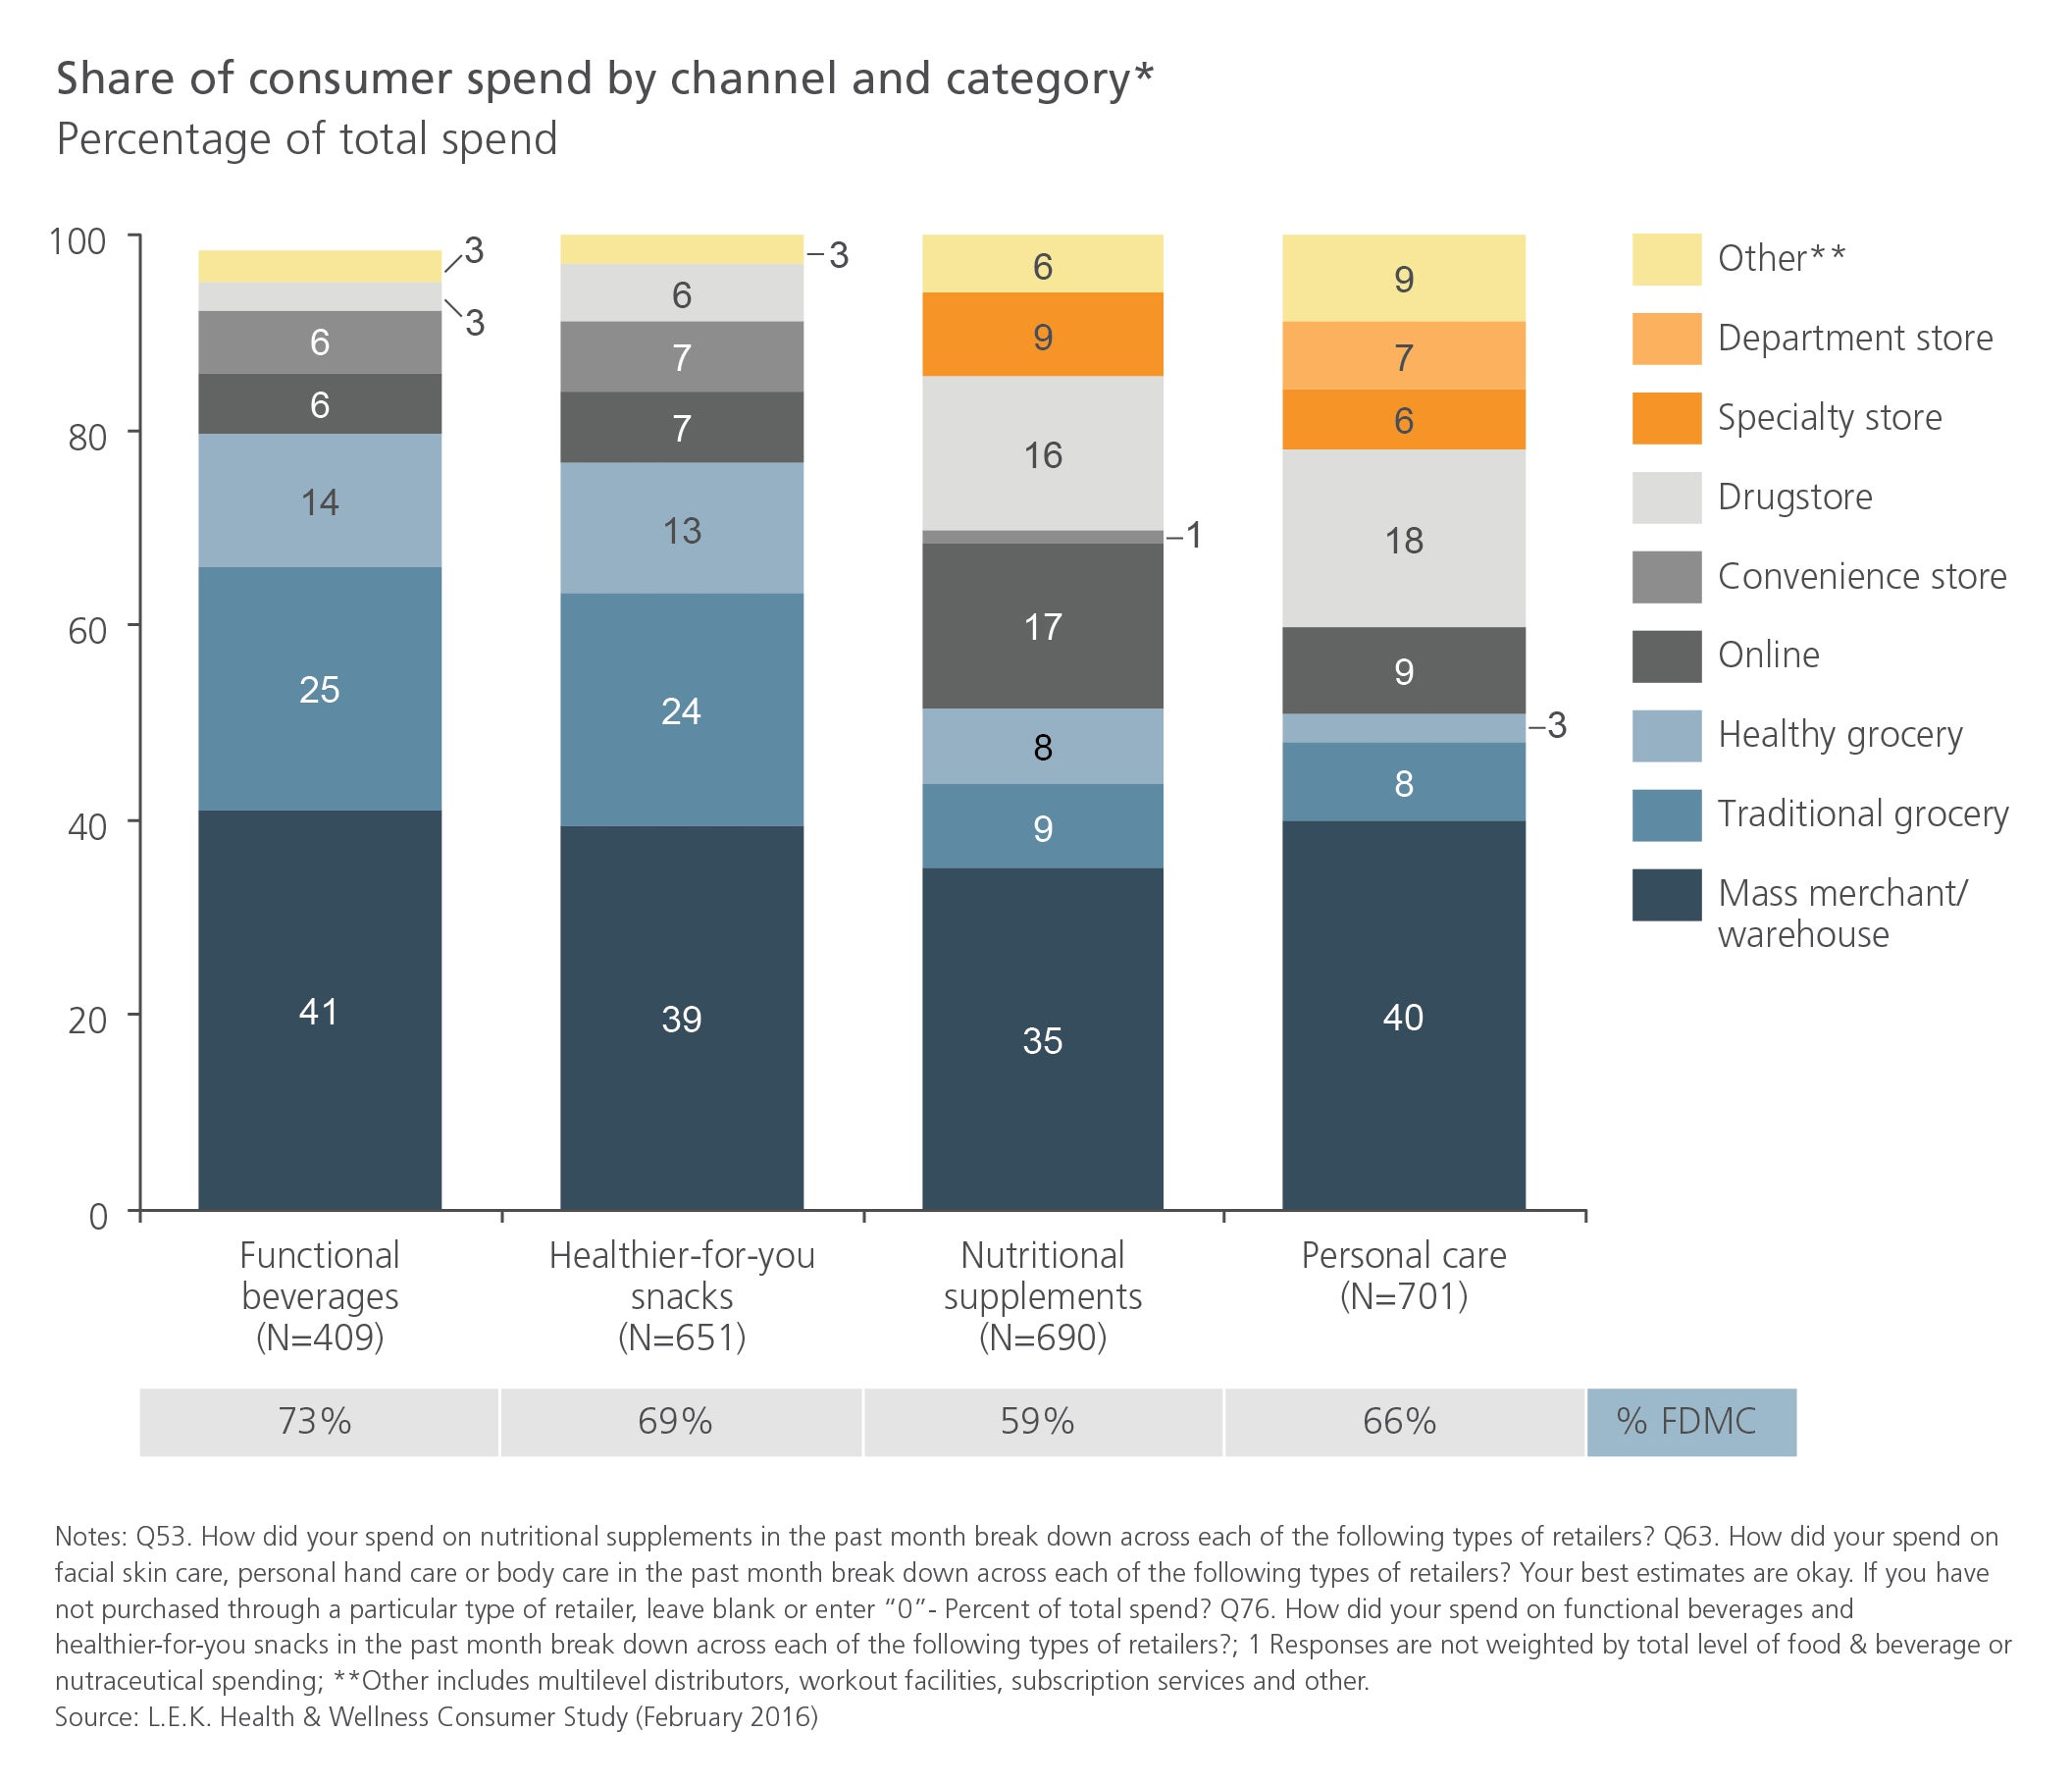 Share of consumer spend by channel and category